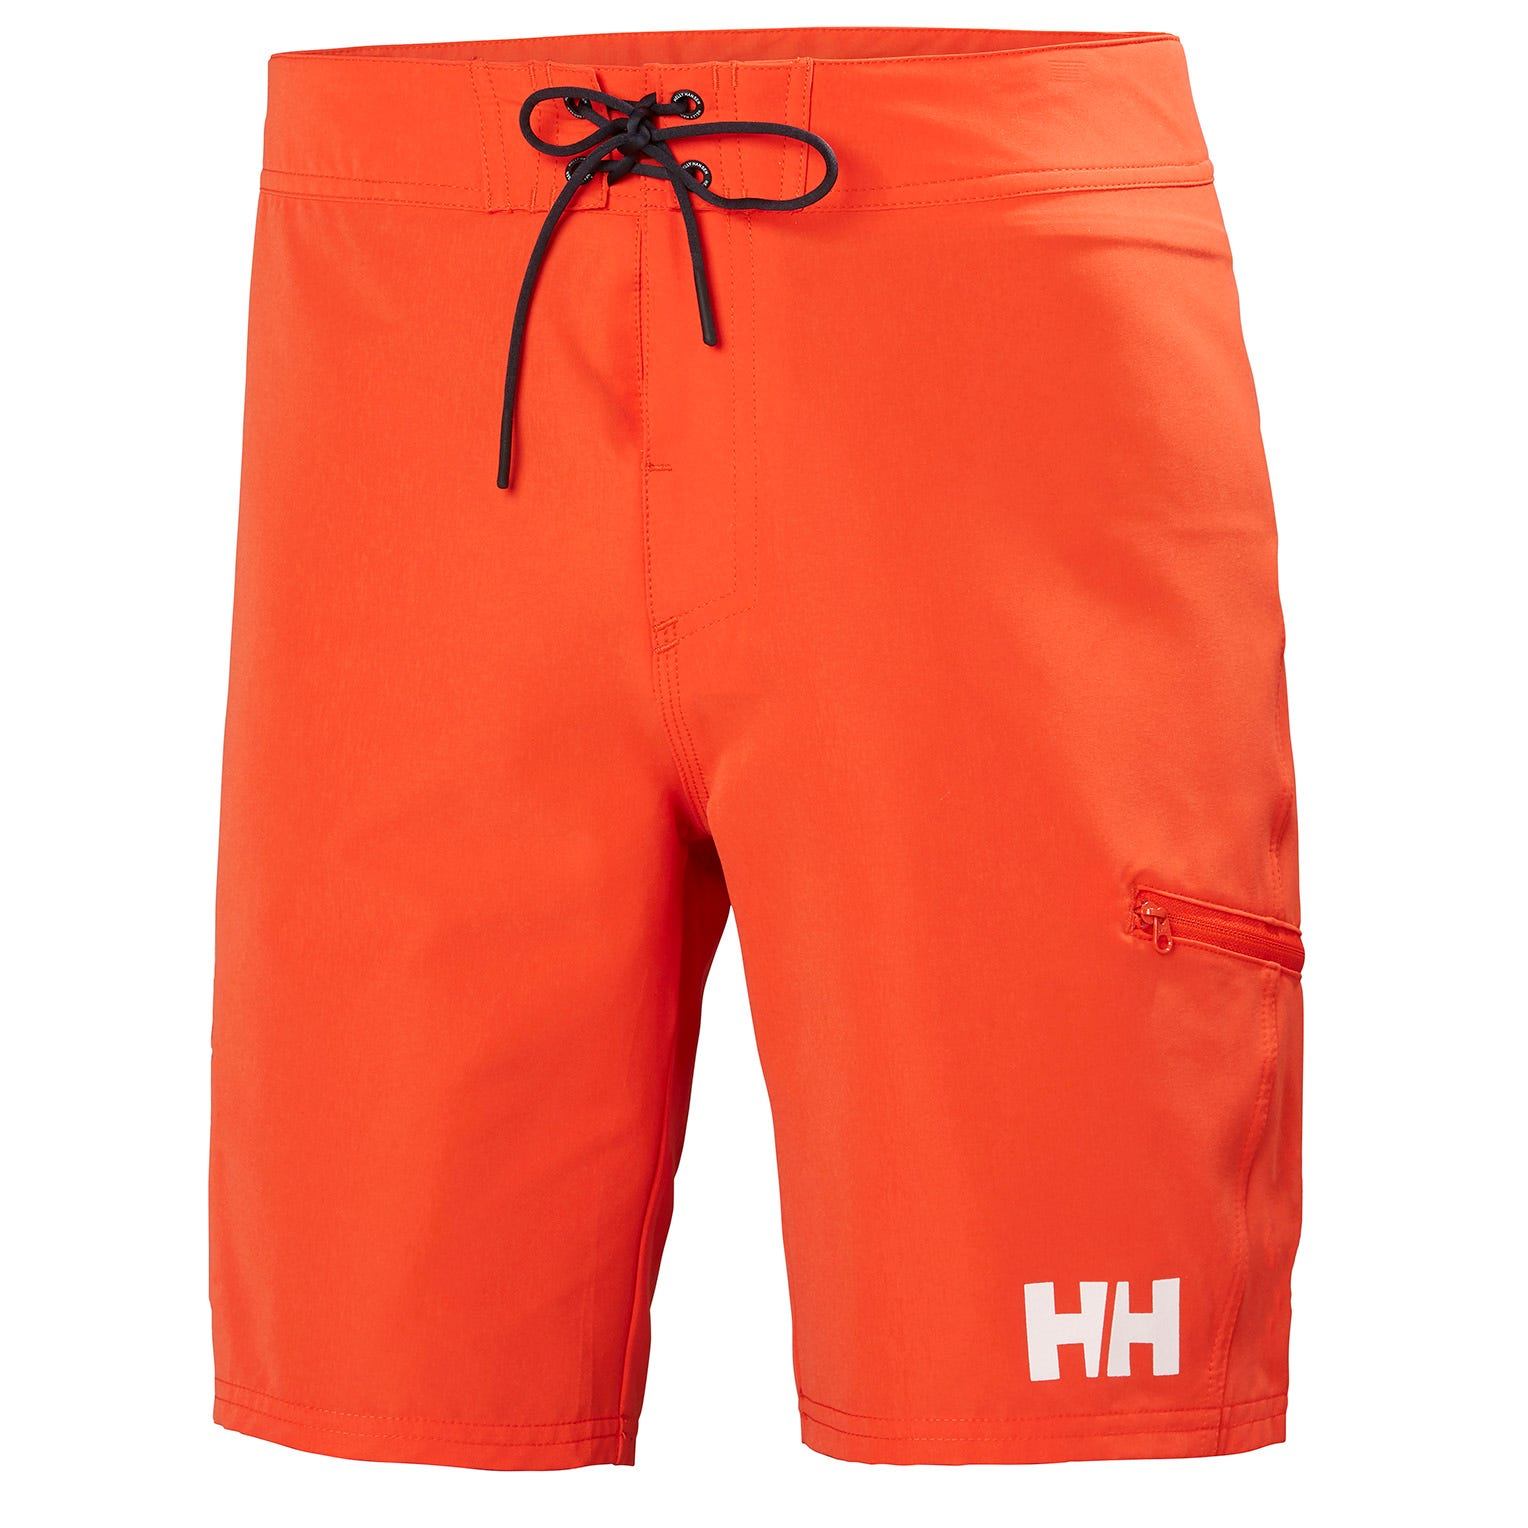 Helly Hansen Mens Hp Board Shorts 9 Sailing Trouser Red 38